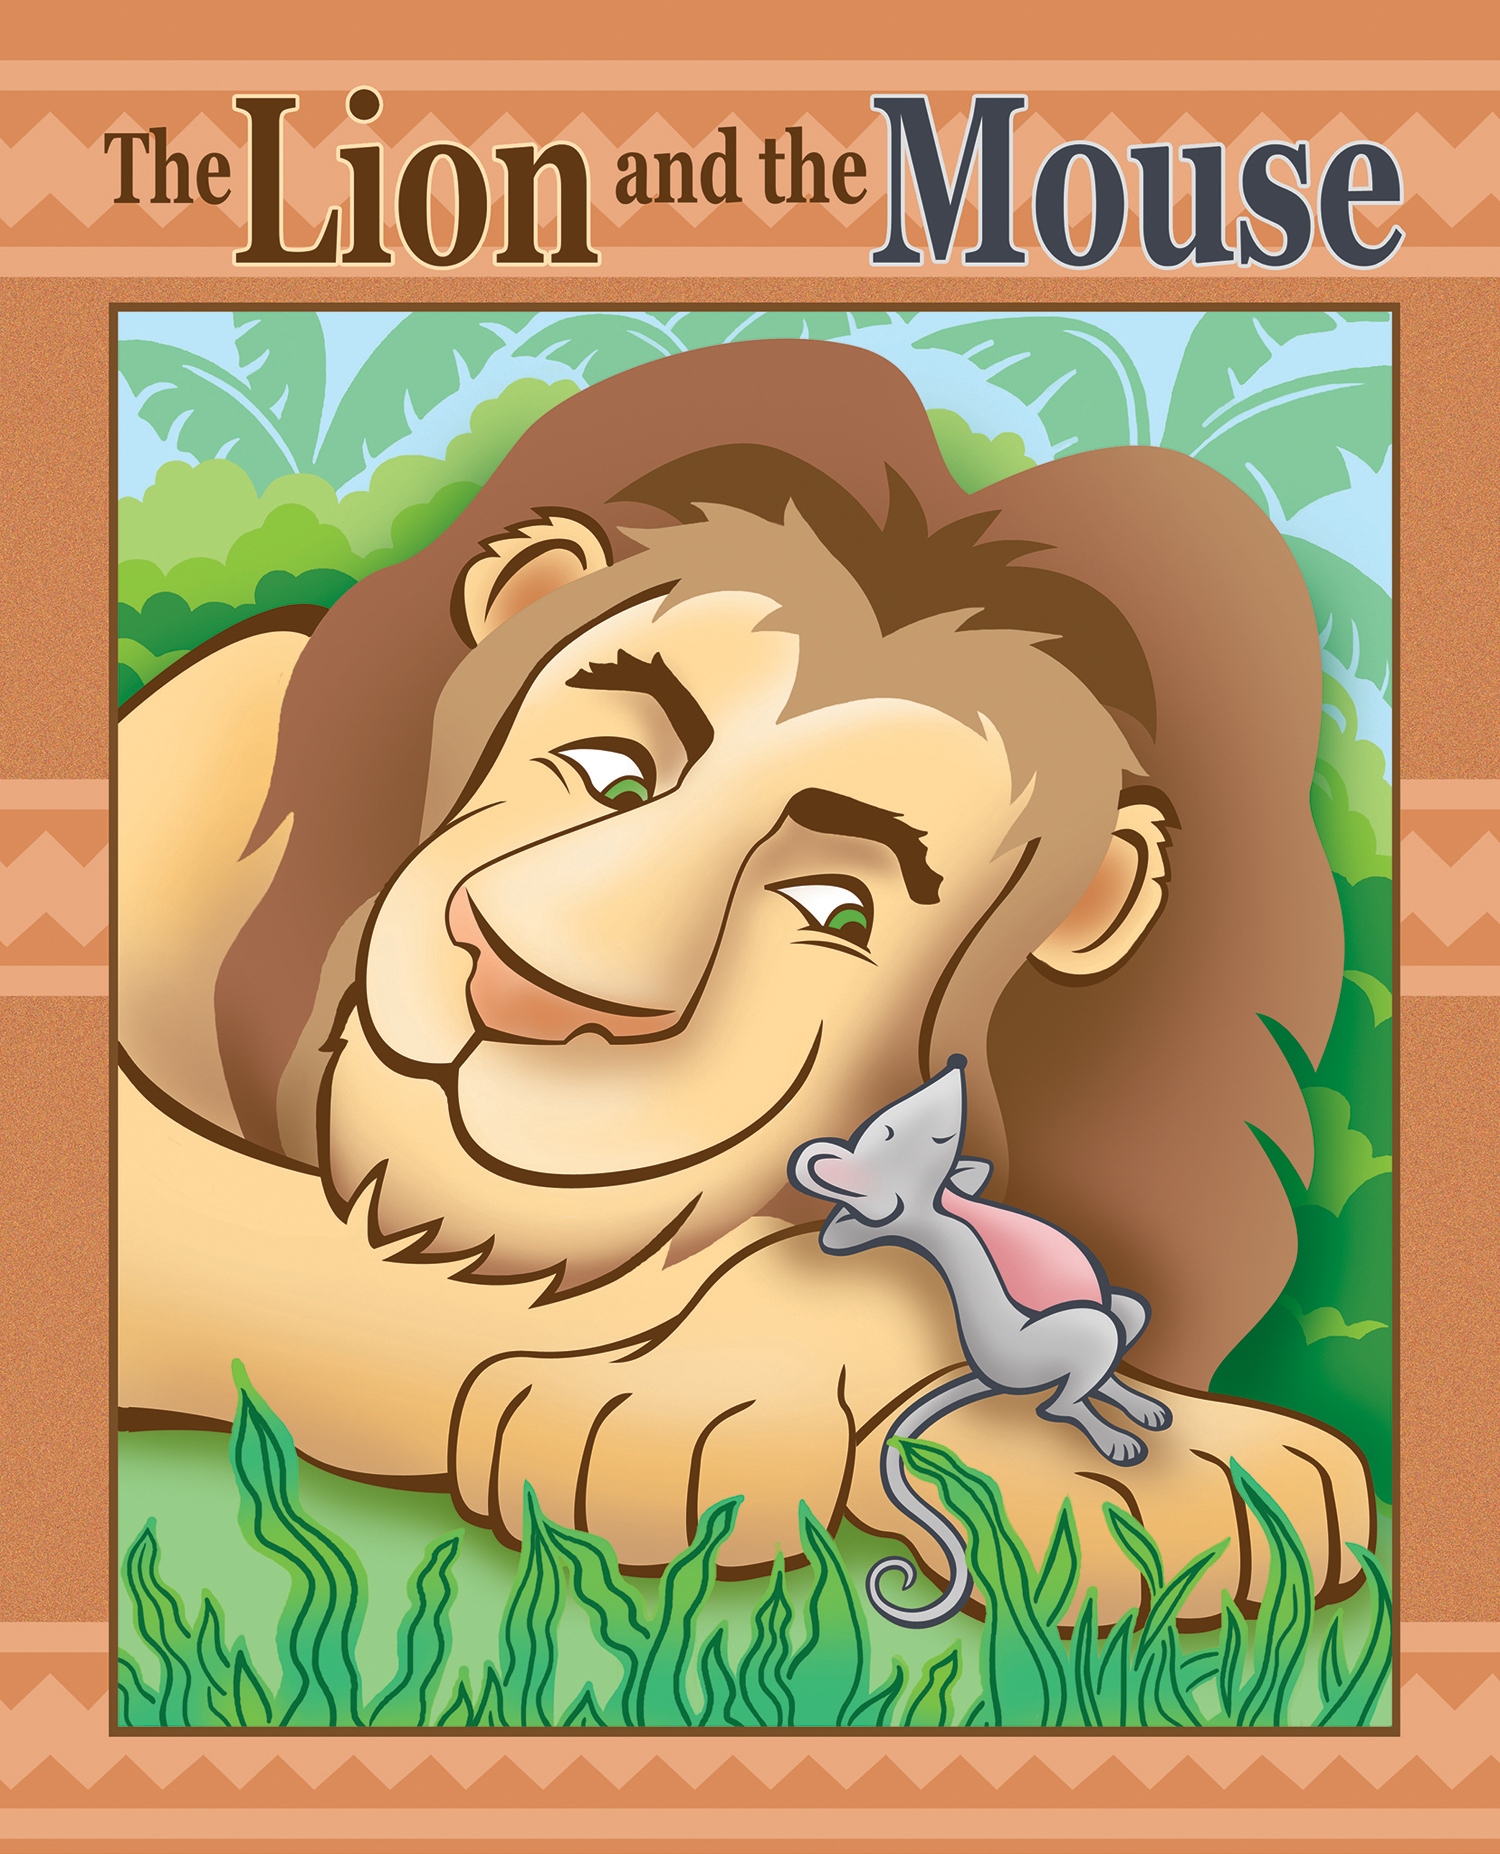 The Lion and the Mouse for Barney & Friends